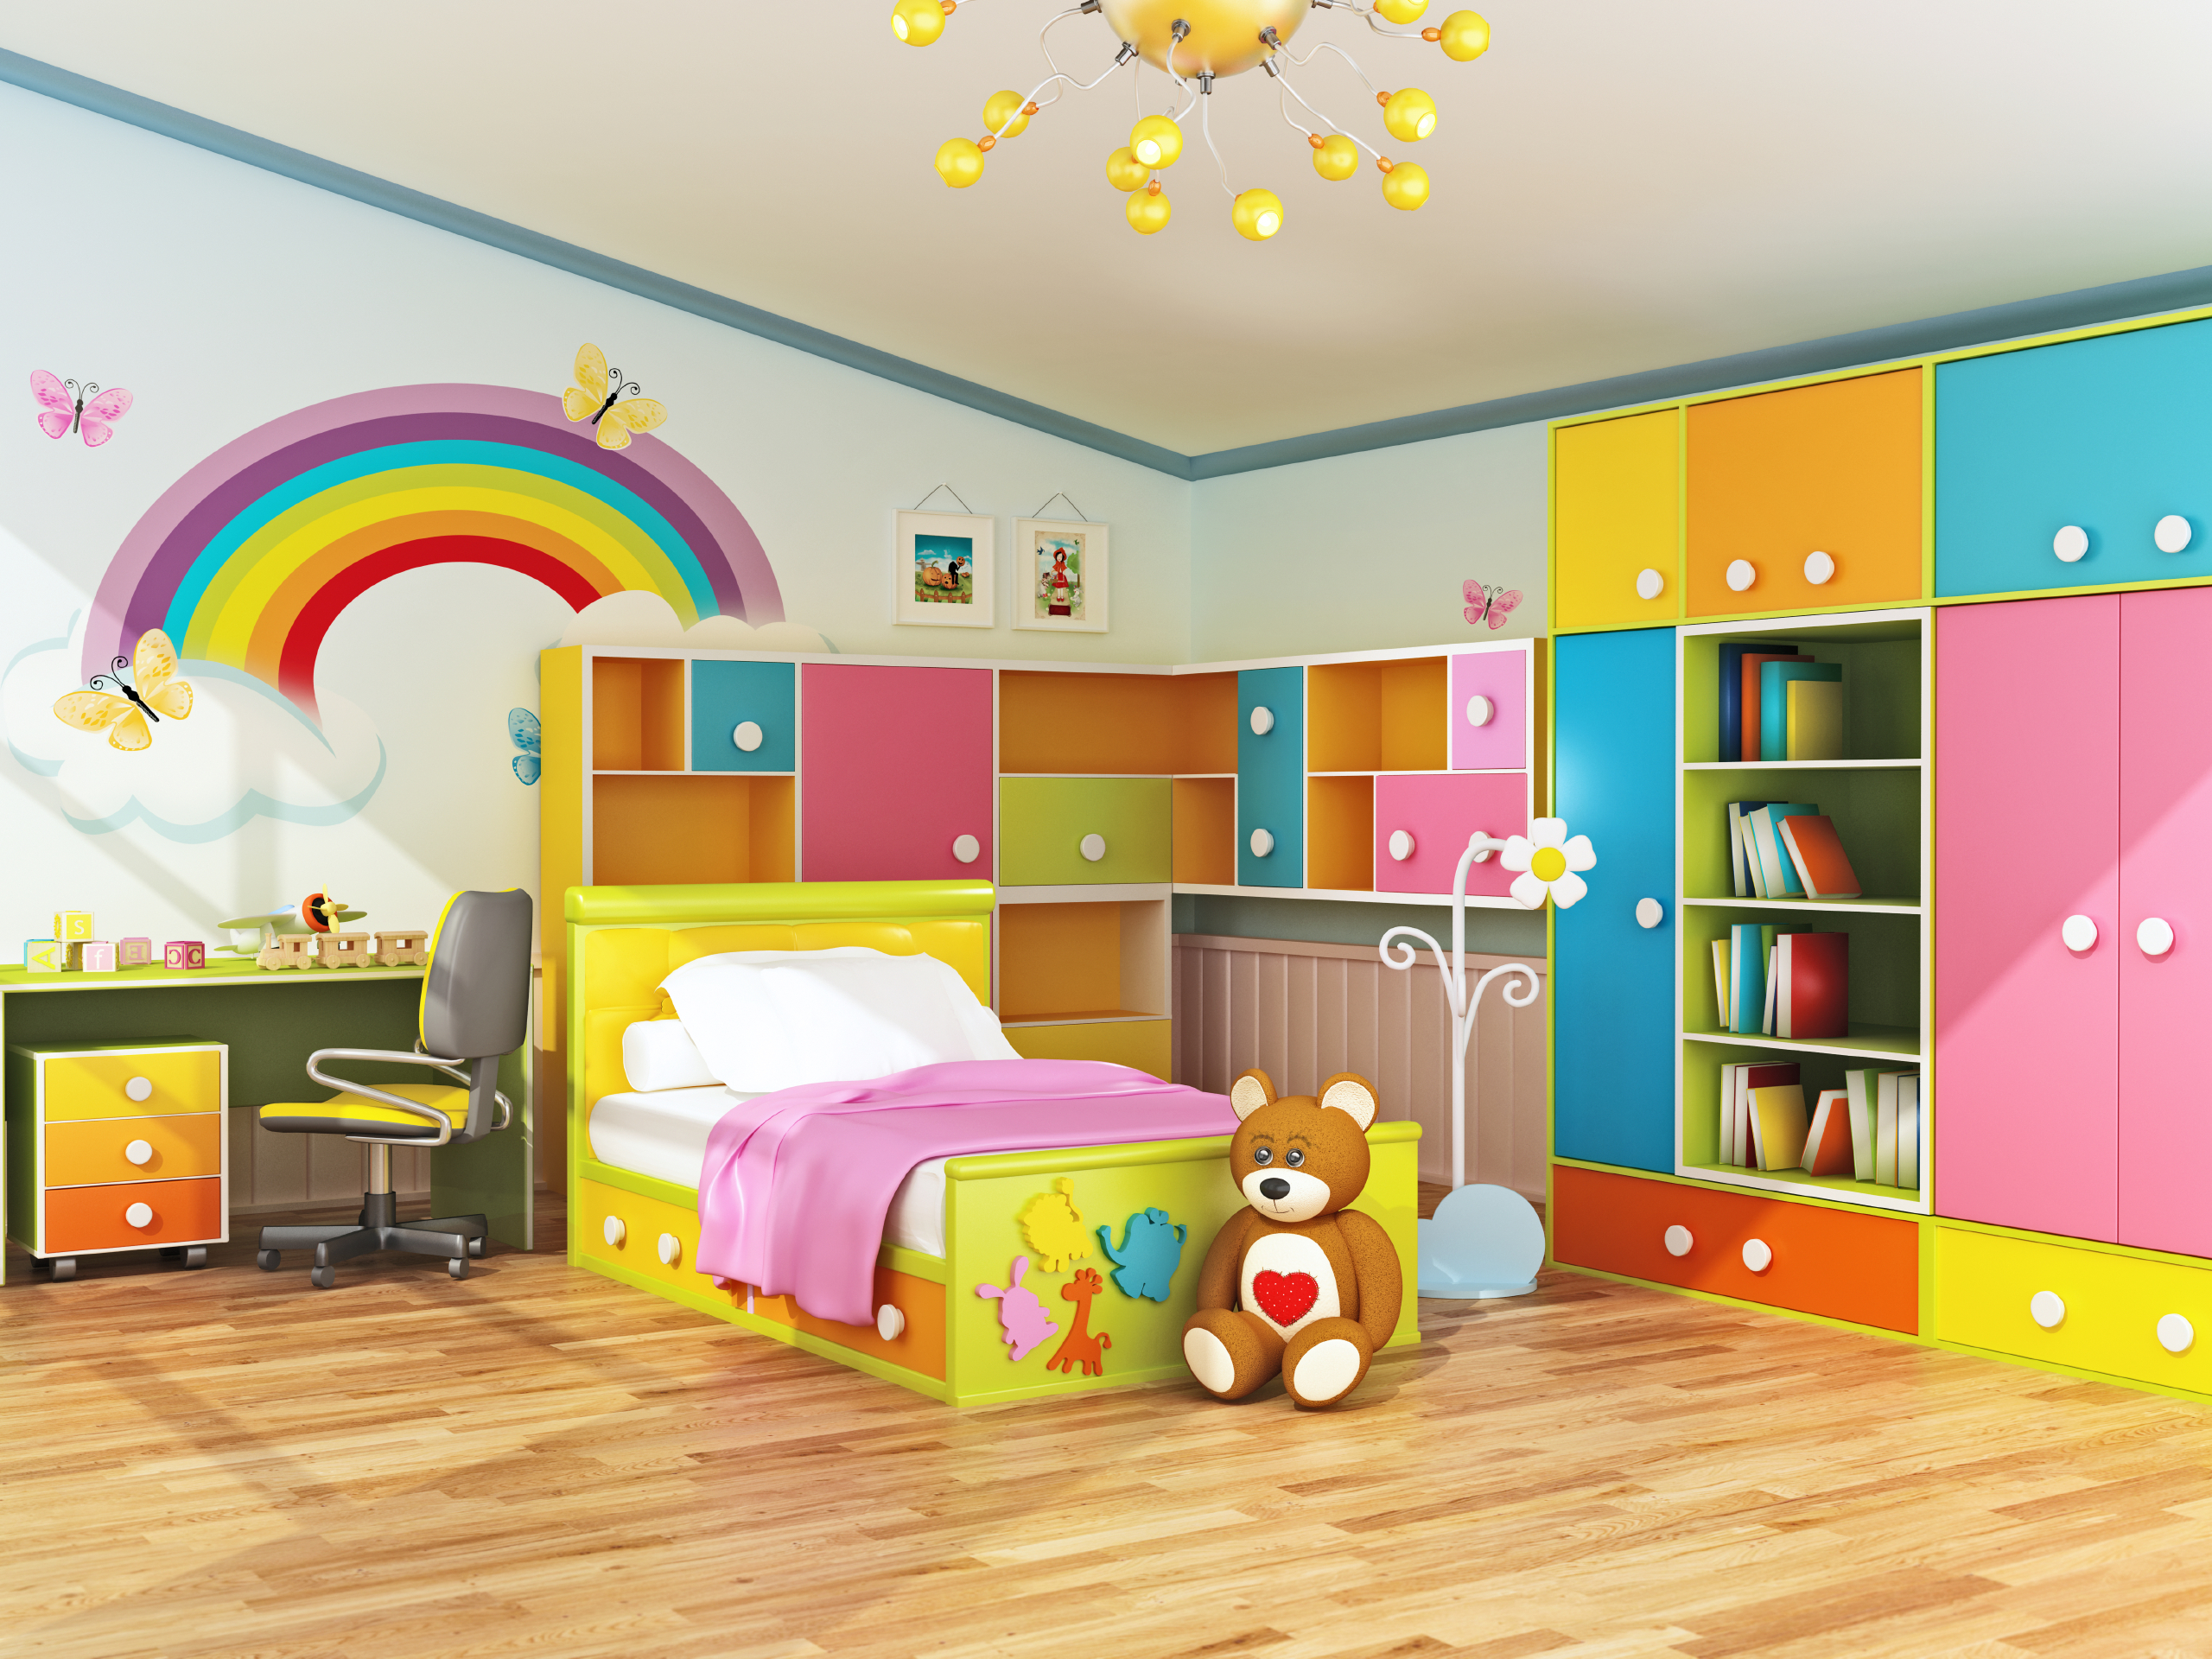 Plan Ahead When Decorating Kids\' Bedrooms | RISMedia\\'s Housecall